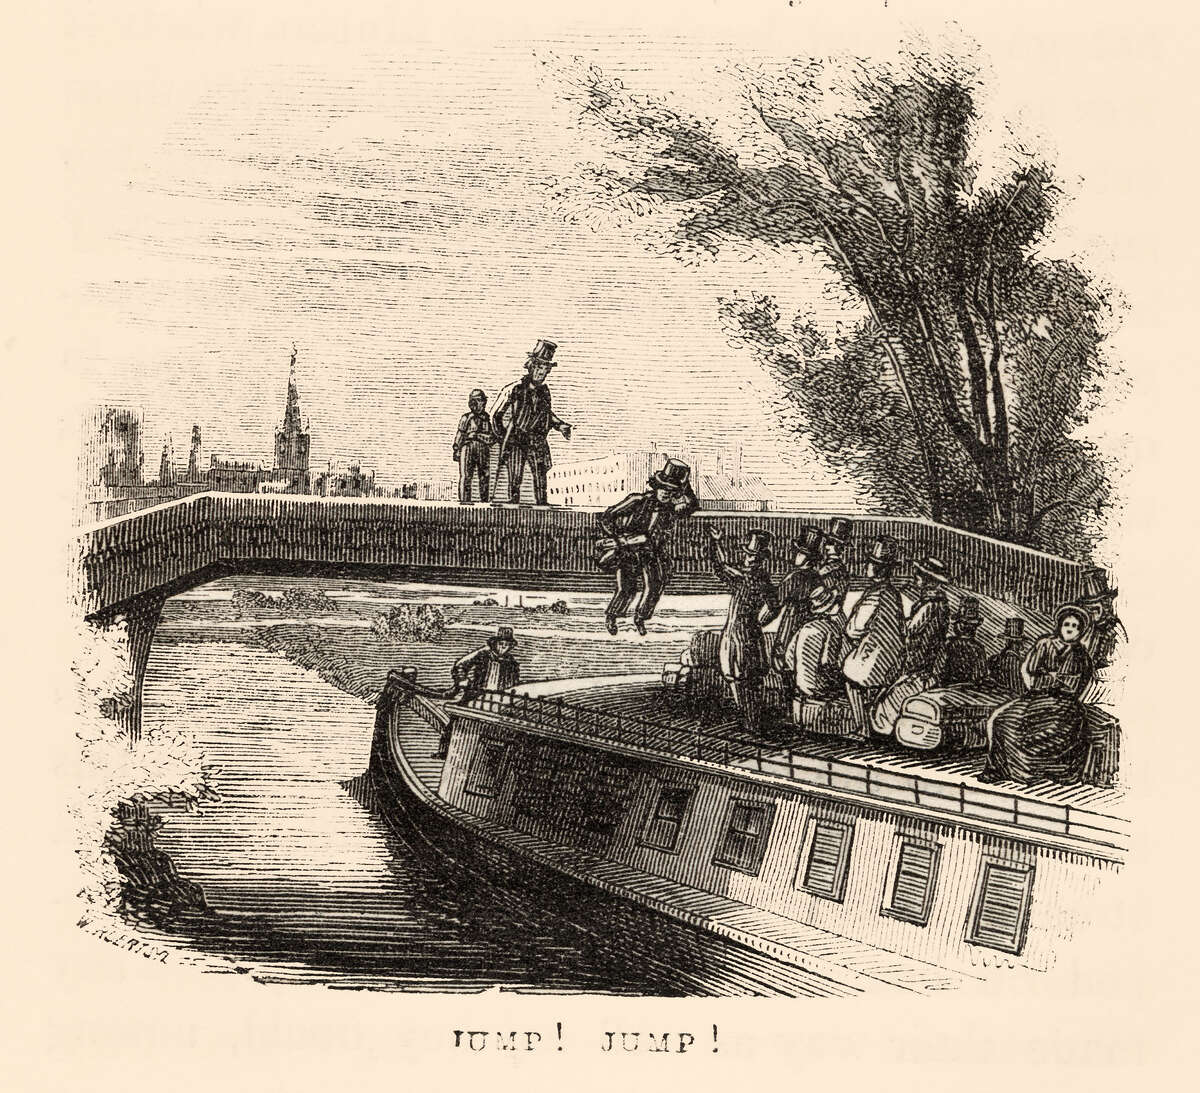 Keep clicking through the slideshow for a look at the Erie Canal through the years. Marco Pauls' Voyages and Travels: Erie Canal Jump Jump Jacob Abbott New York: Harper & Brothers 1852 Albany Institute of History & Art Library